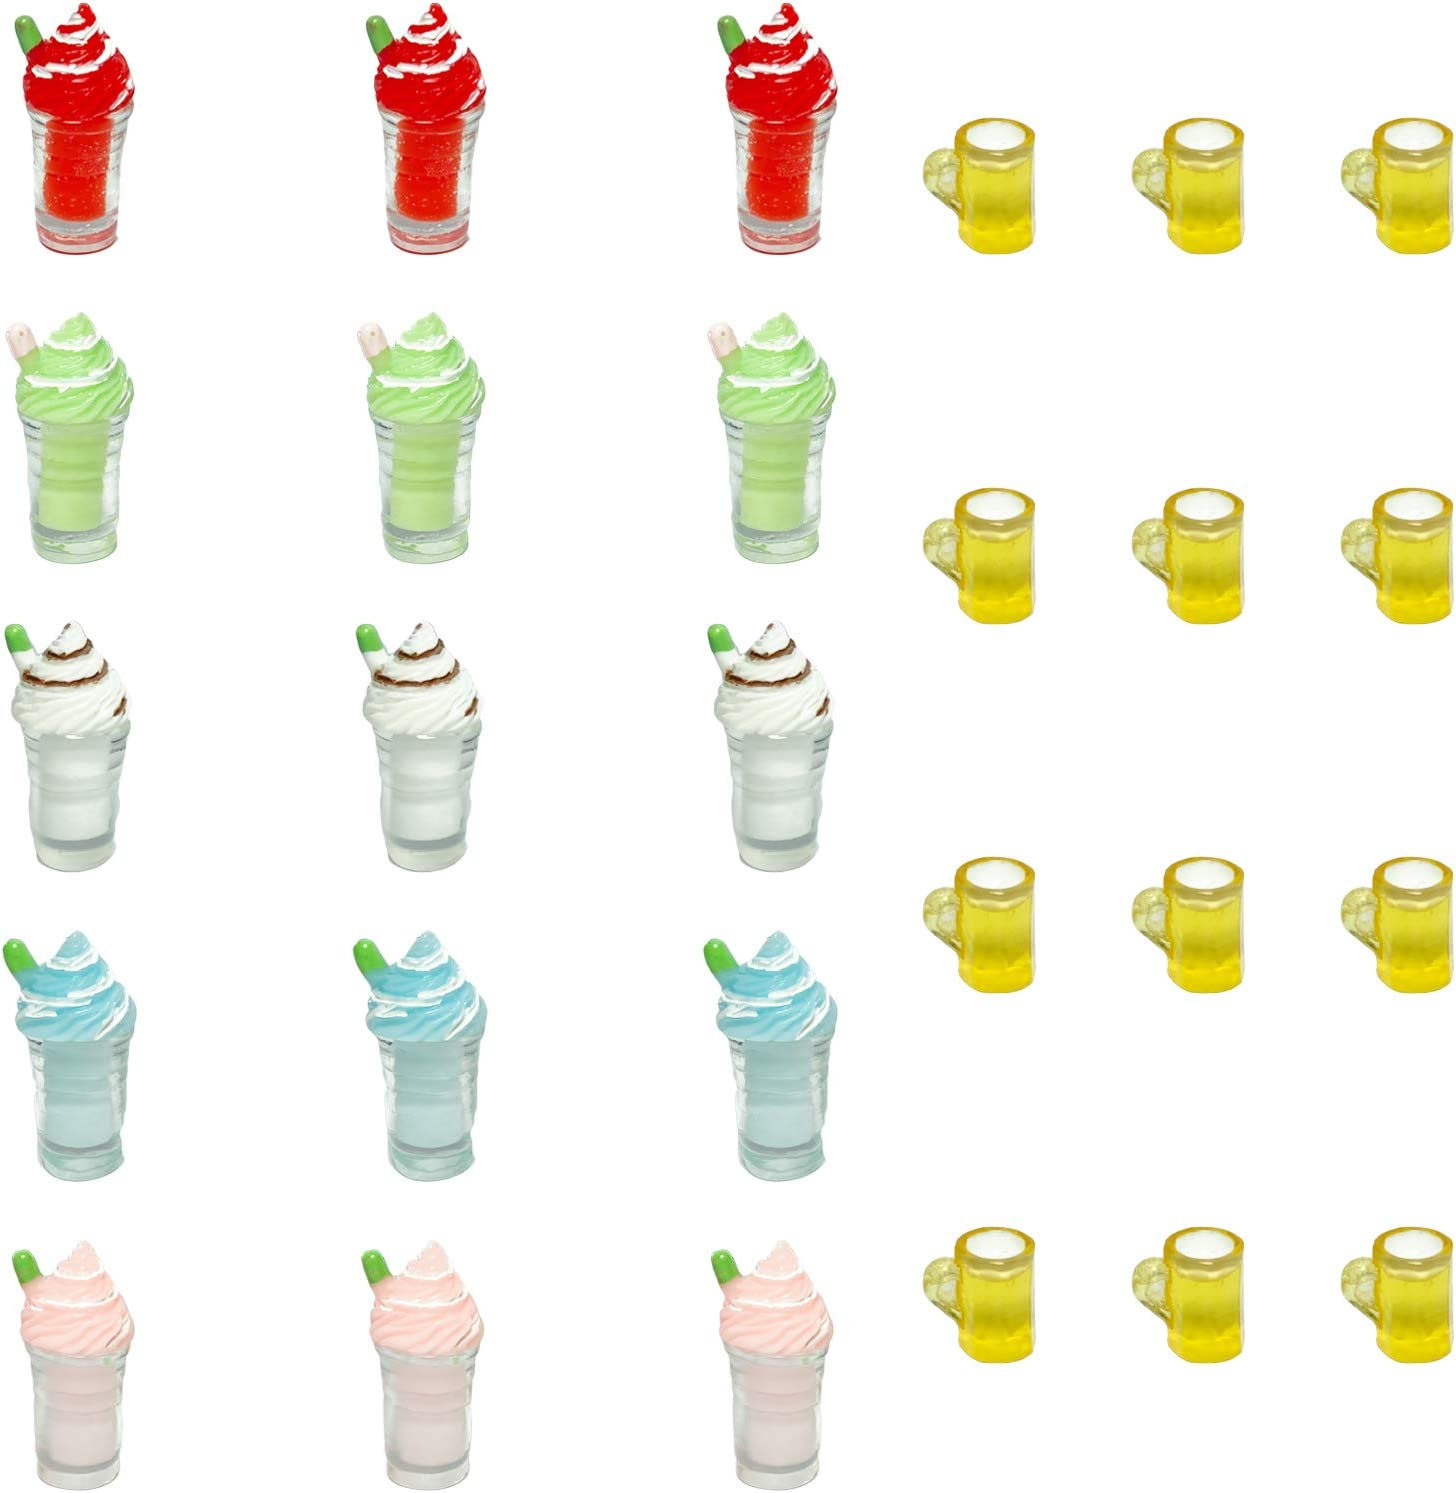 Mulutoo 27pcs Miniature Ice Cream Cup Beer Cup Miniature Food Drink Bottles Dollhouse Bonsai Fairy Garden Micro Landscape Home Garden Decoration Accessories